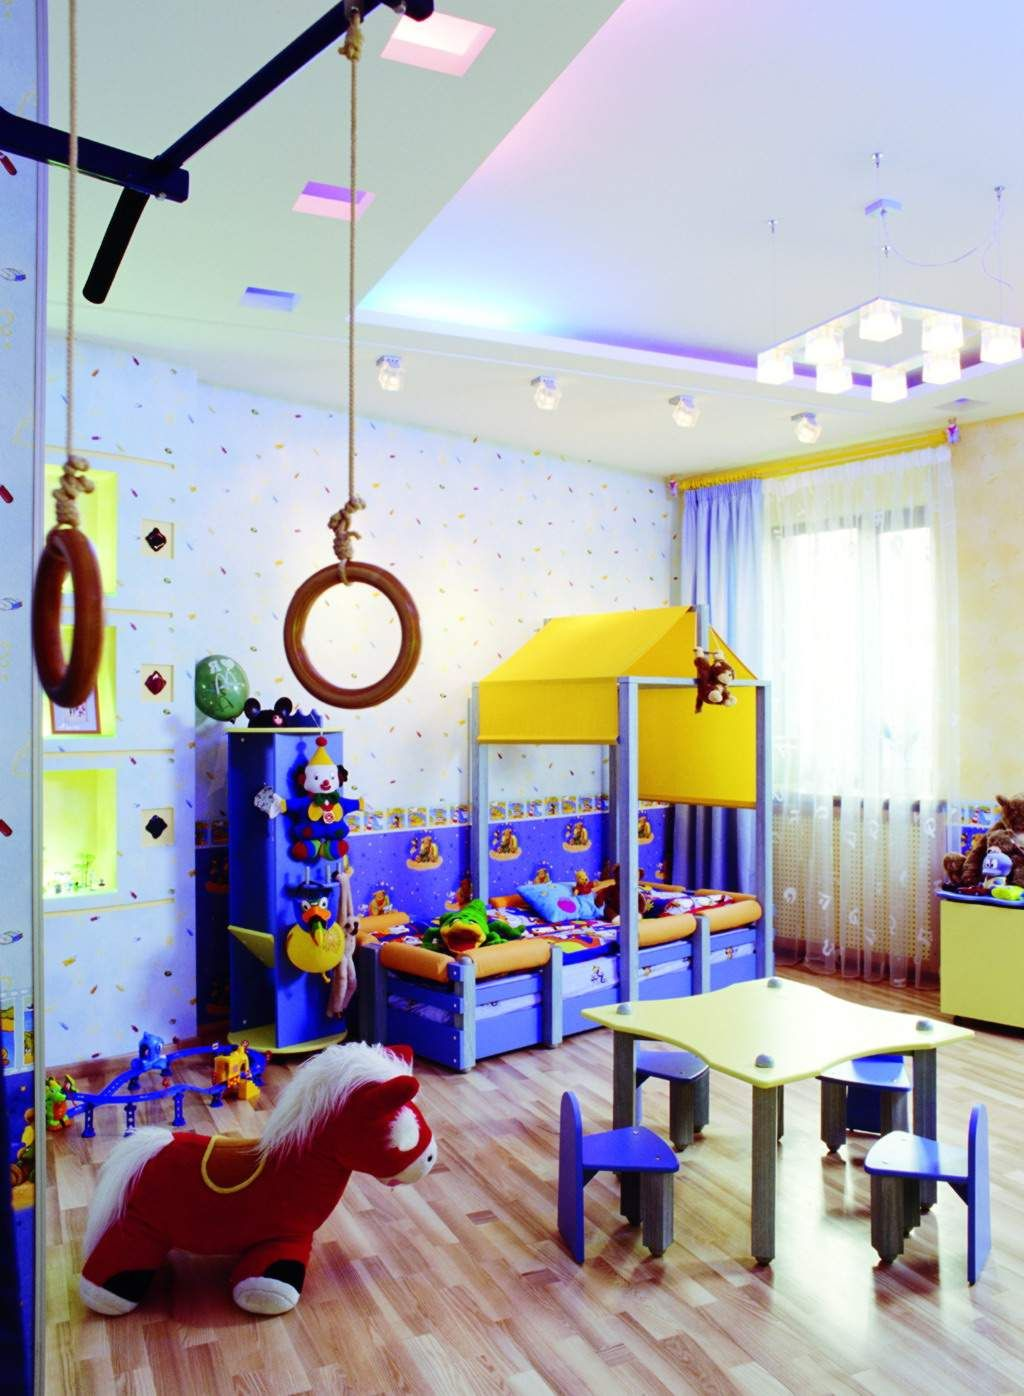 Bedroom designer for kids - Interior Design Kids Bedroom